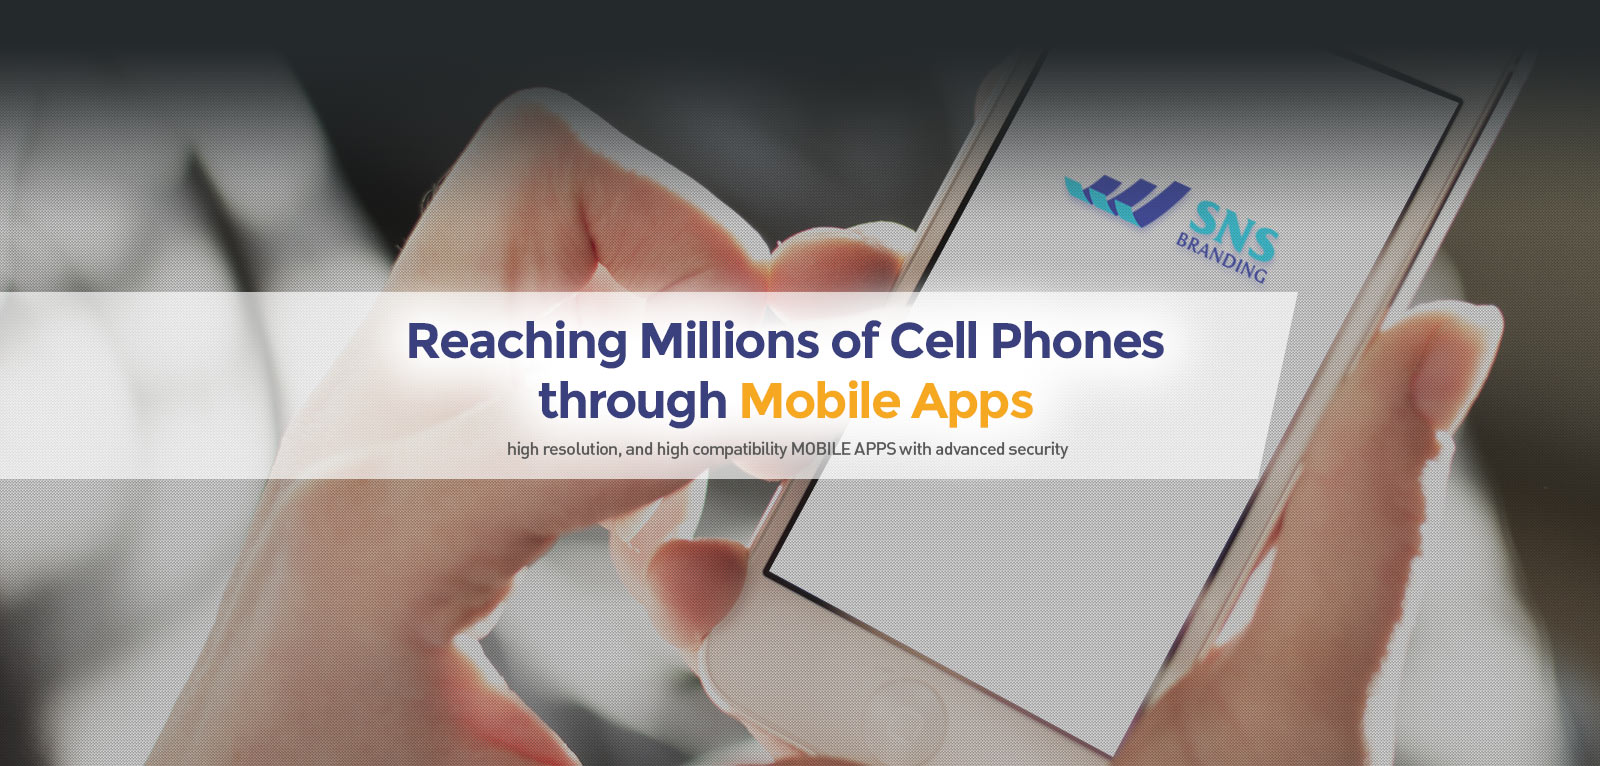 Reaching Millions of Cell Phones through Mobile Apps